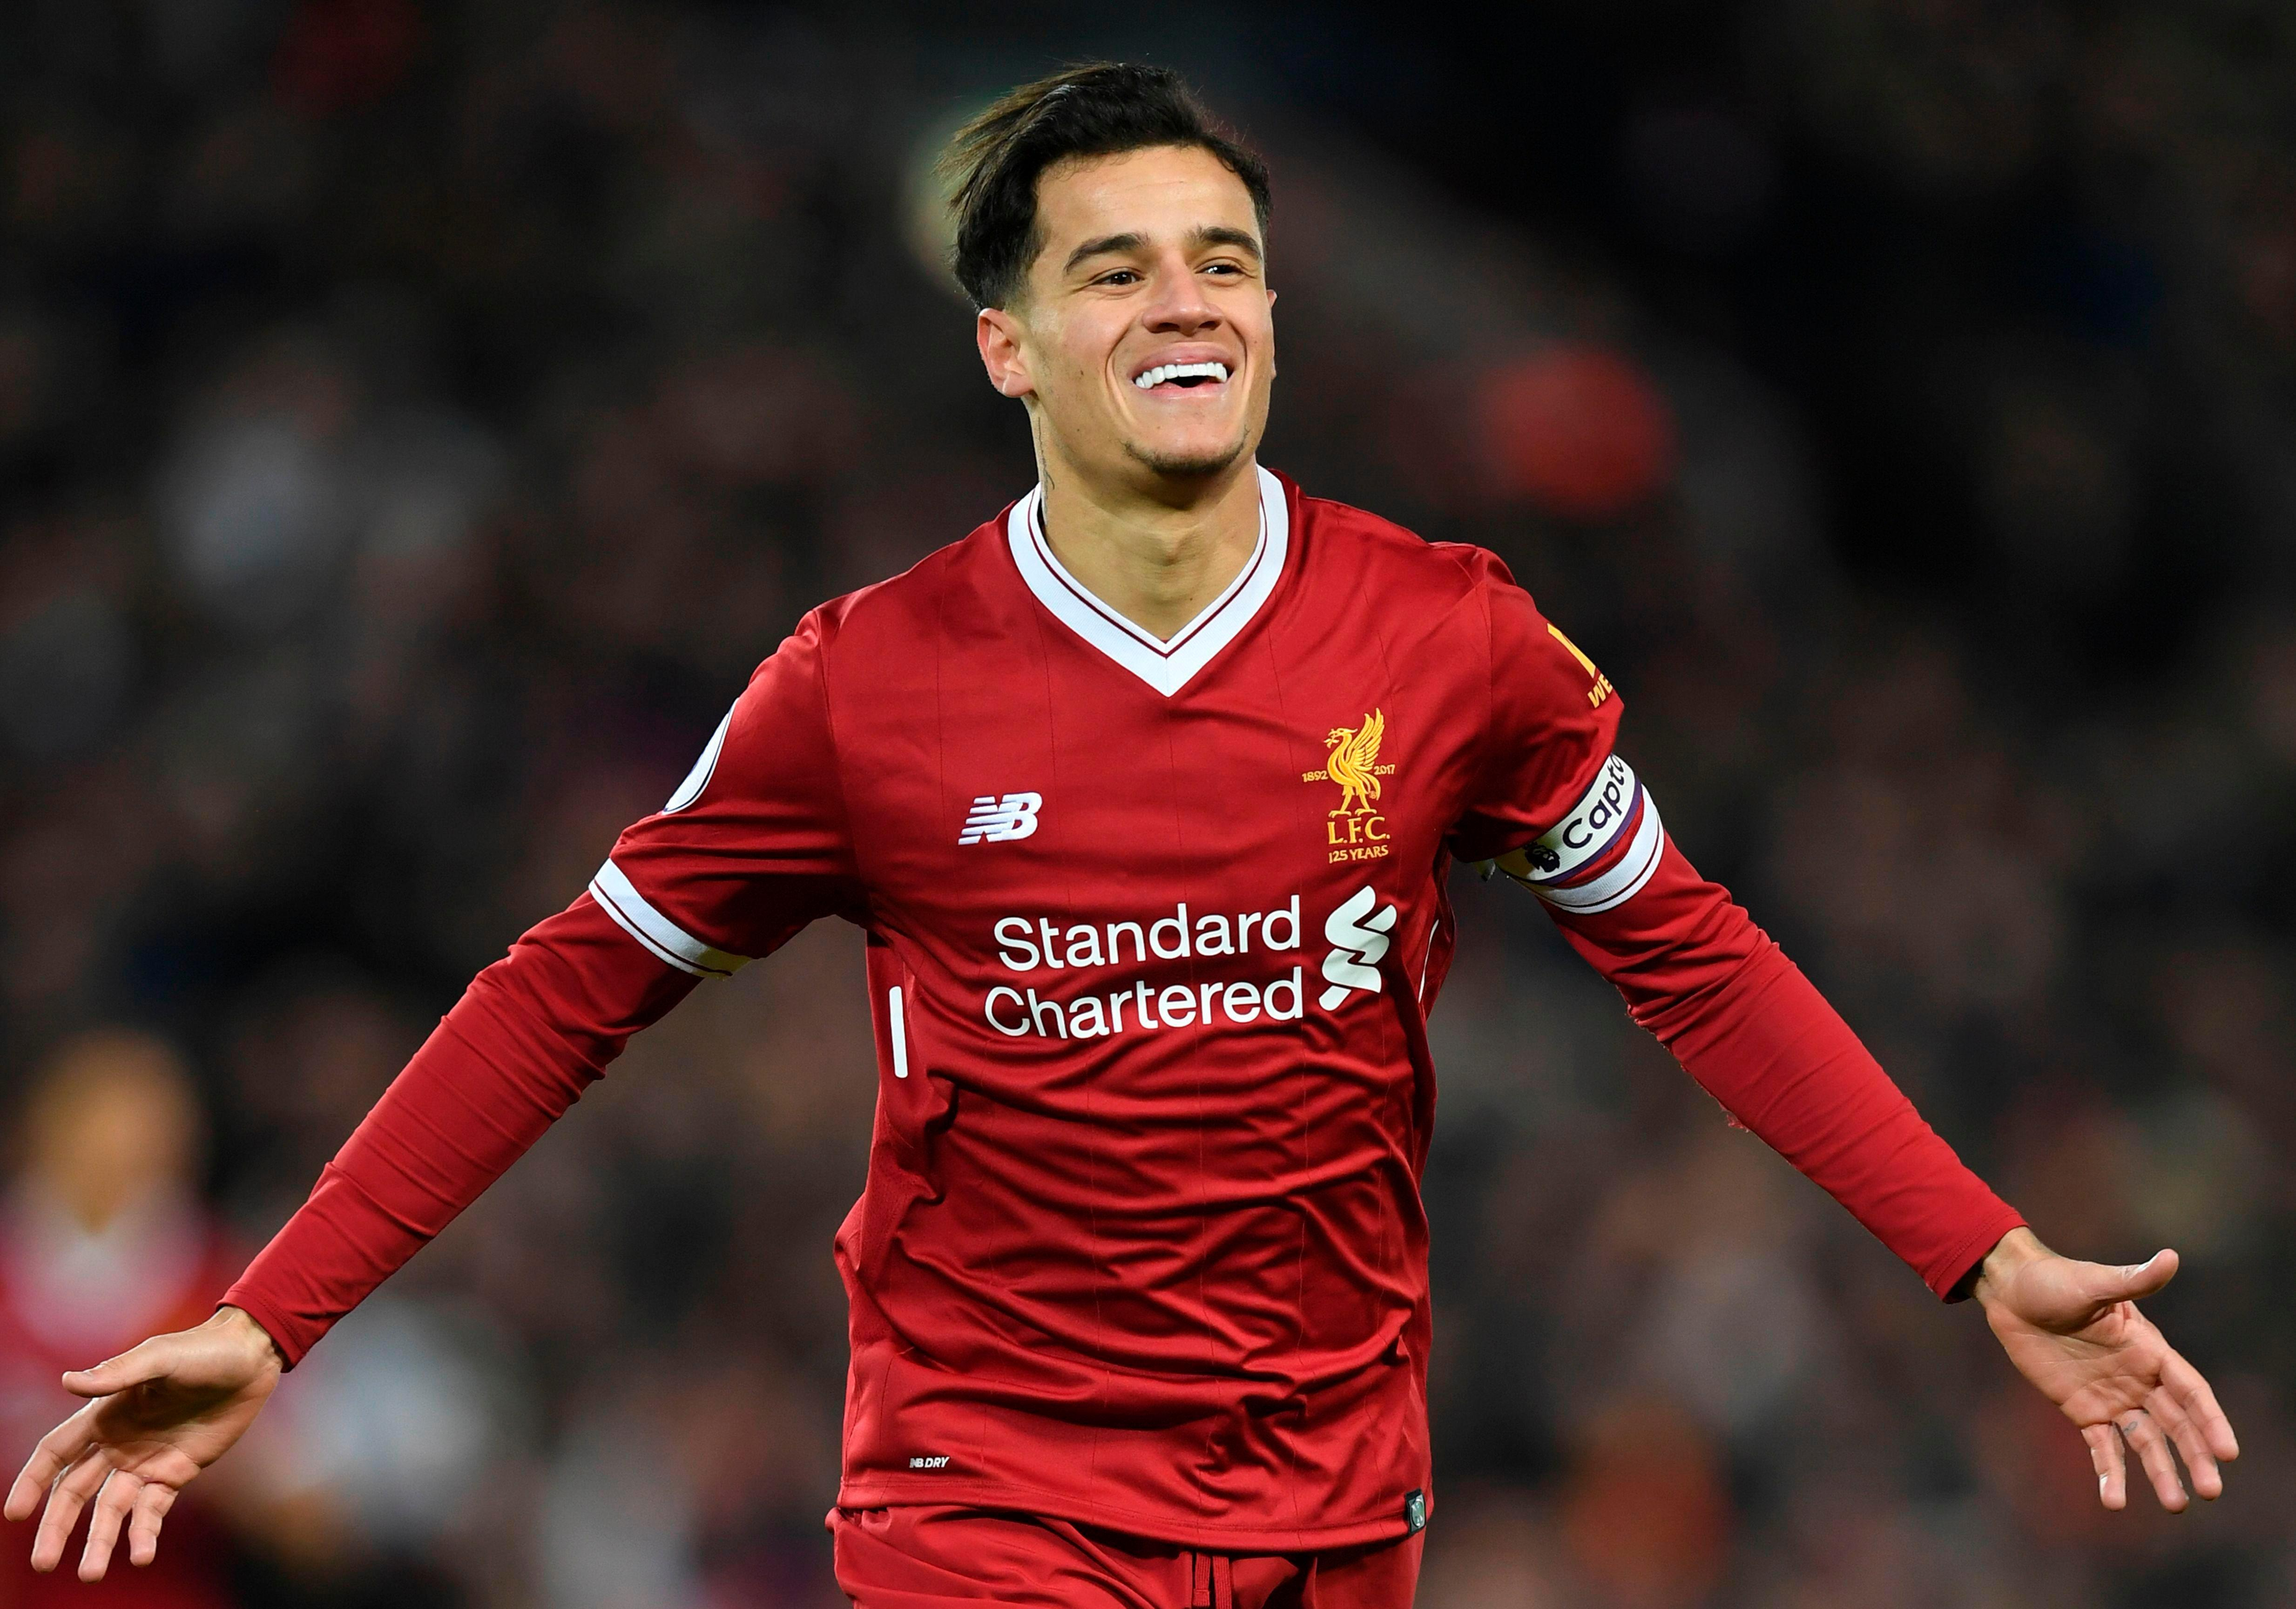 Liverpool and Barcelona are set to hold talks over Philippe Coutinho today